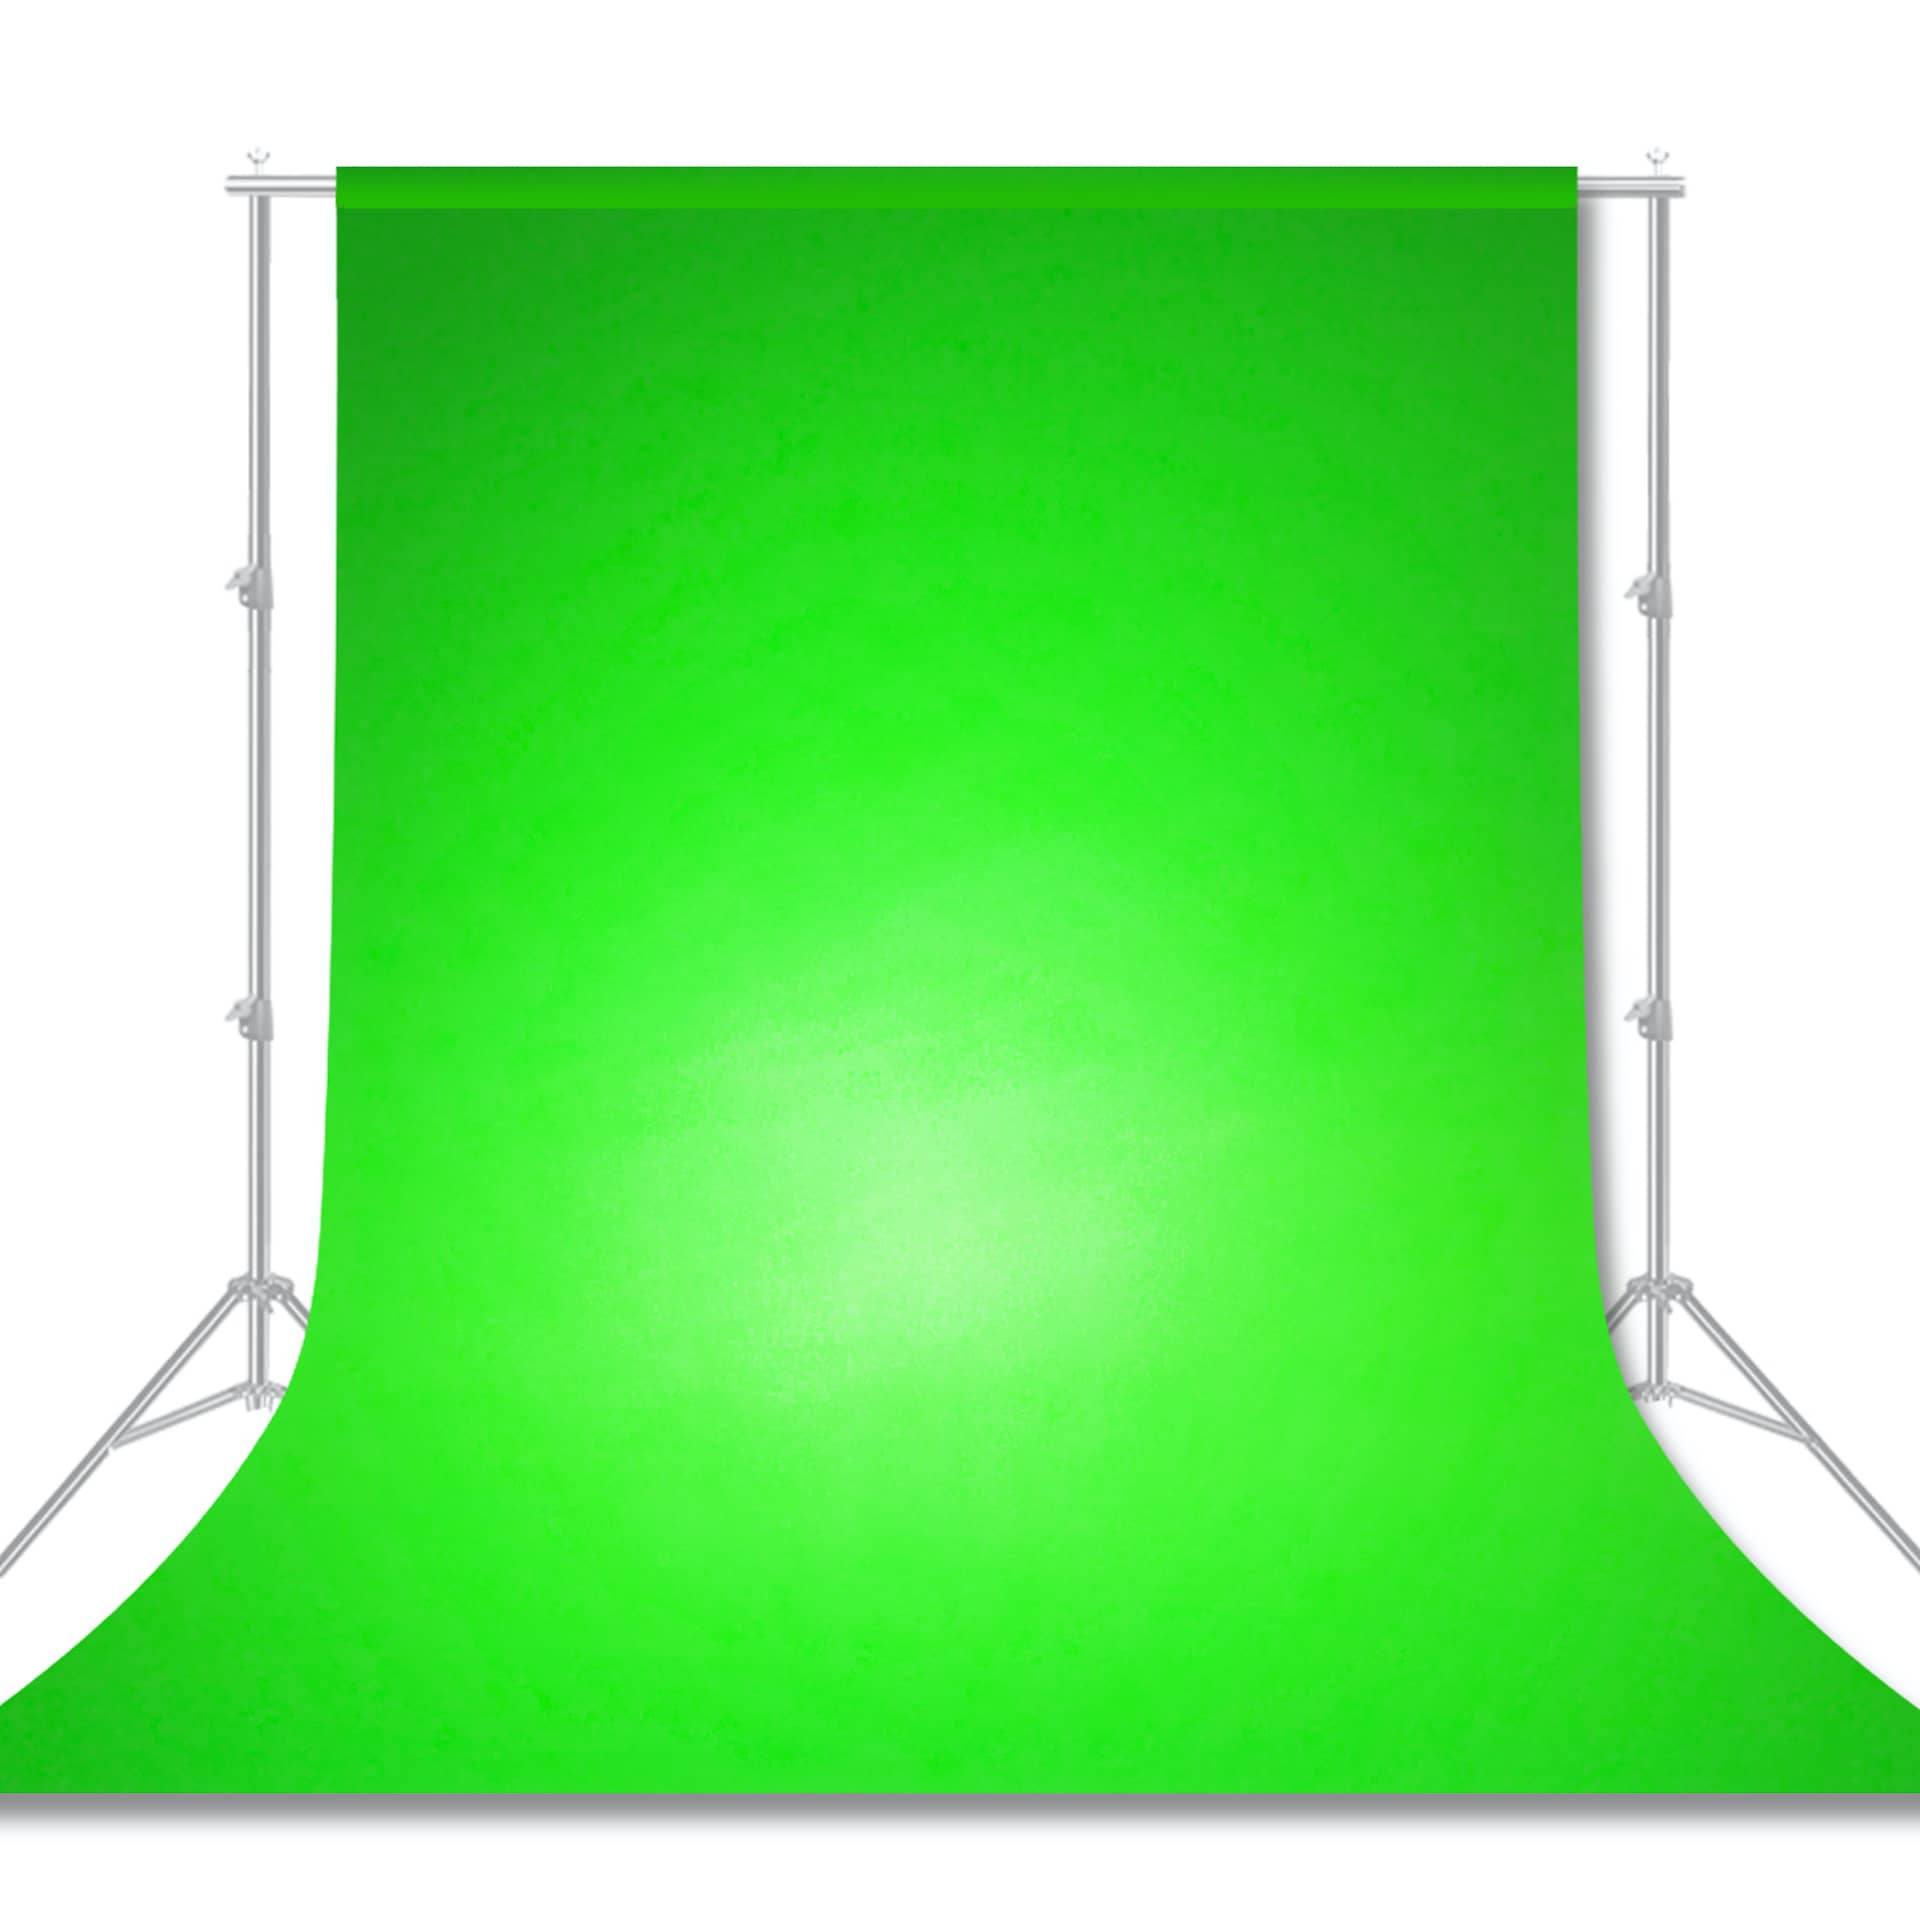 Best Photo Gifts for Photographers - Ideas Photographer Lovers - Green Screen